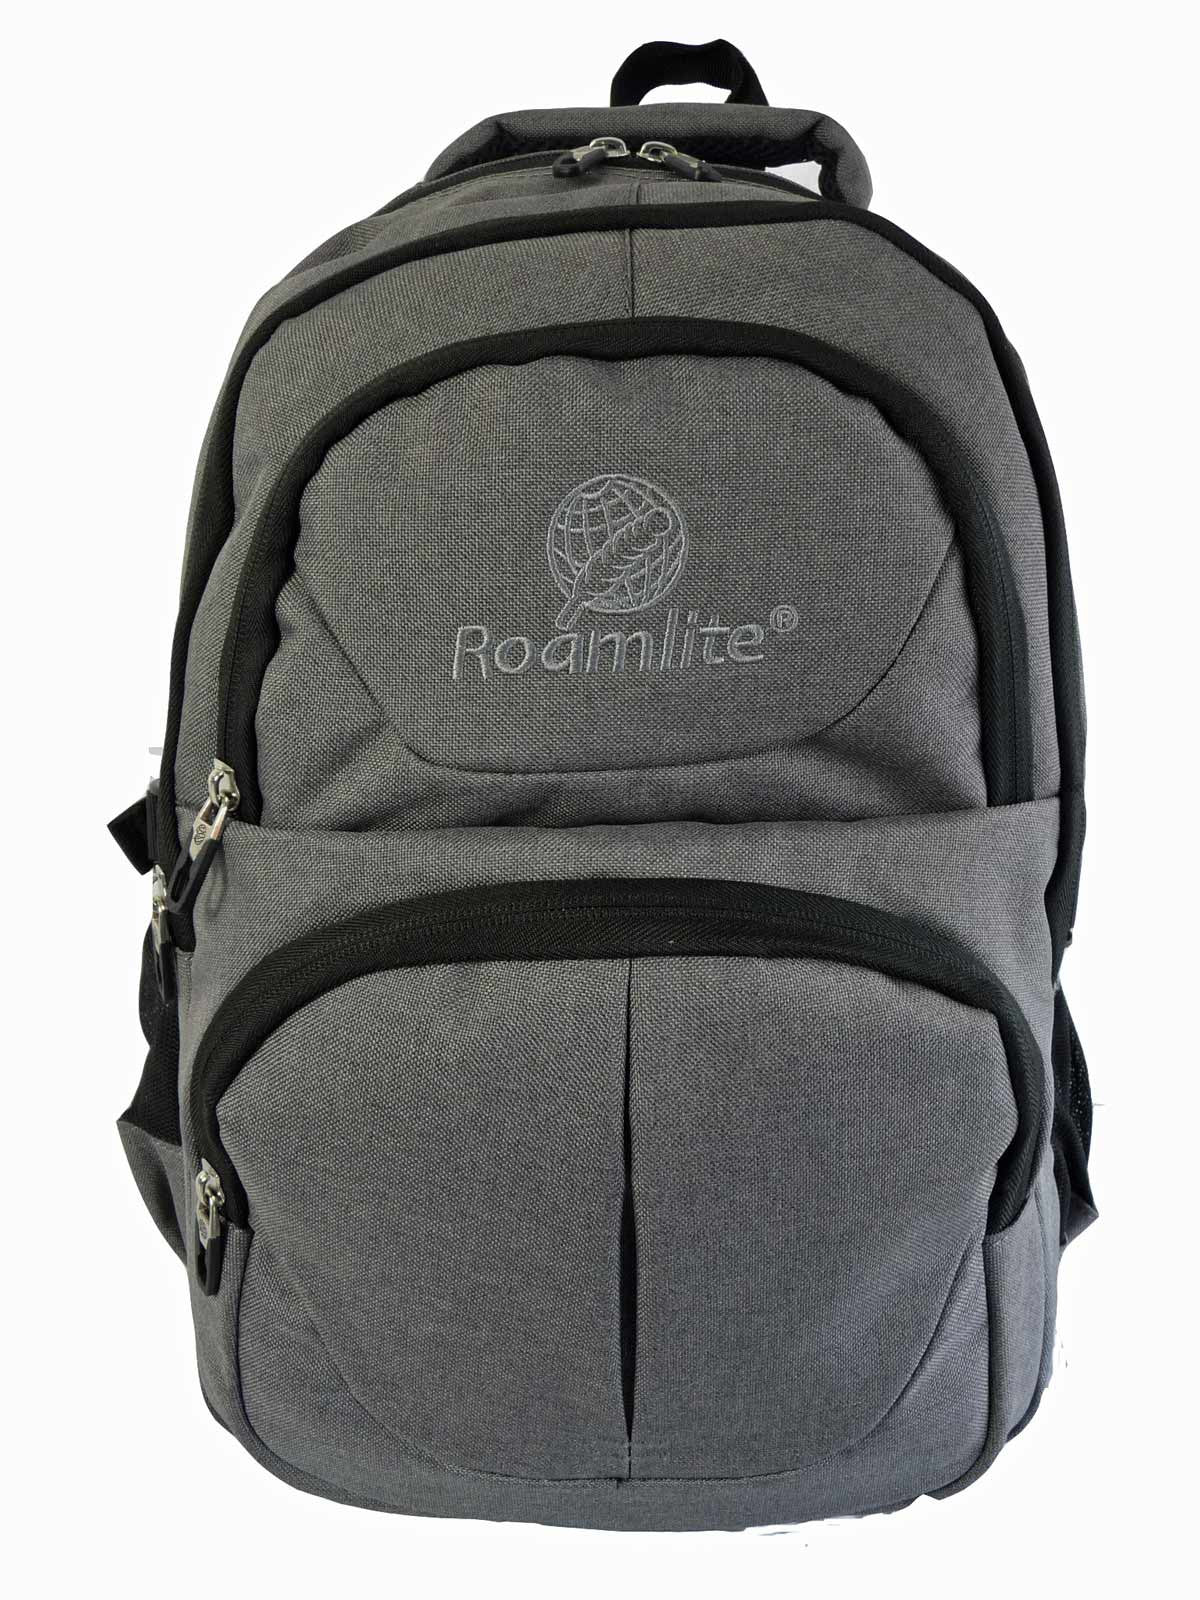 Laptop Macbook Backpack Rucksack Bag RL43GY Front View